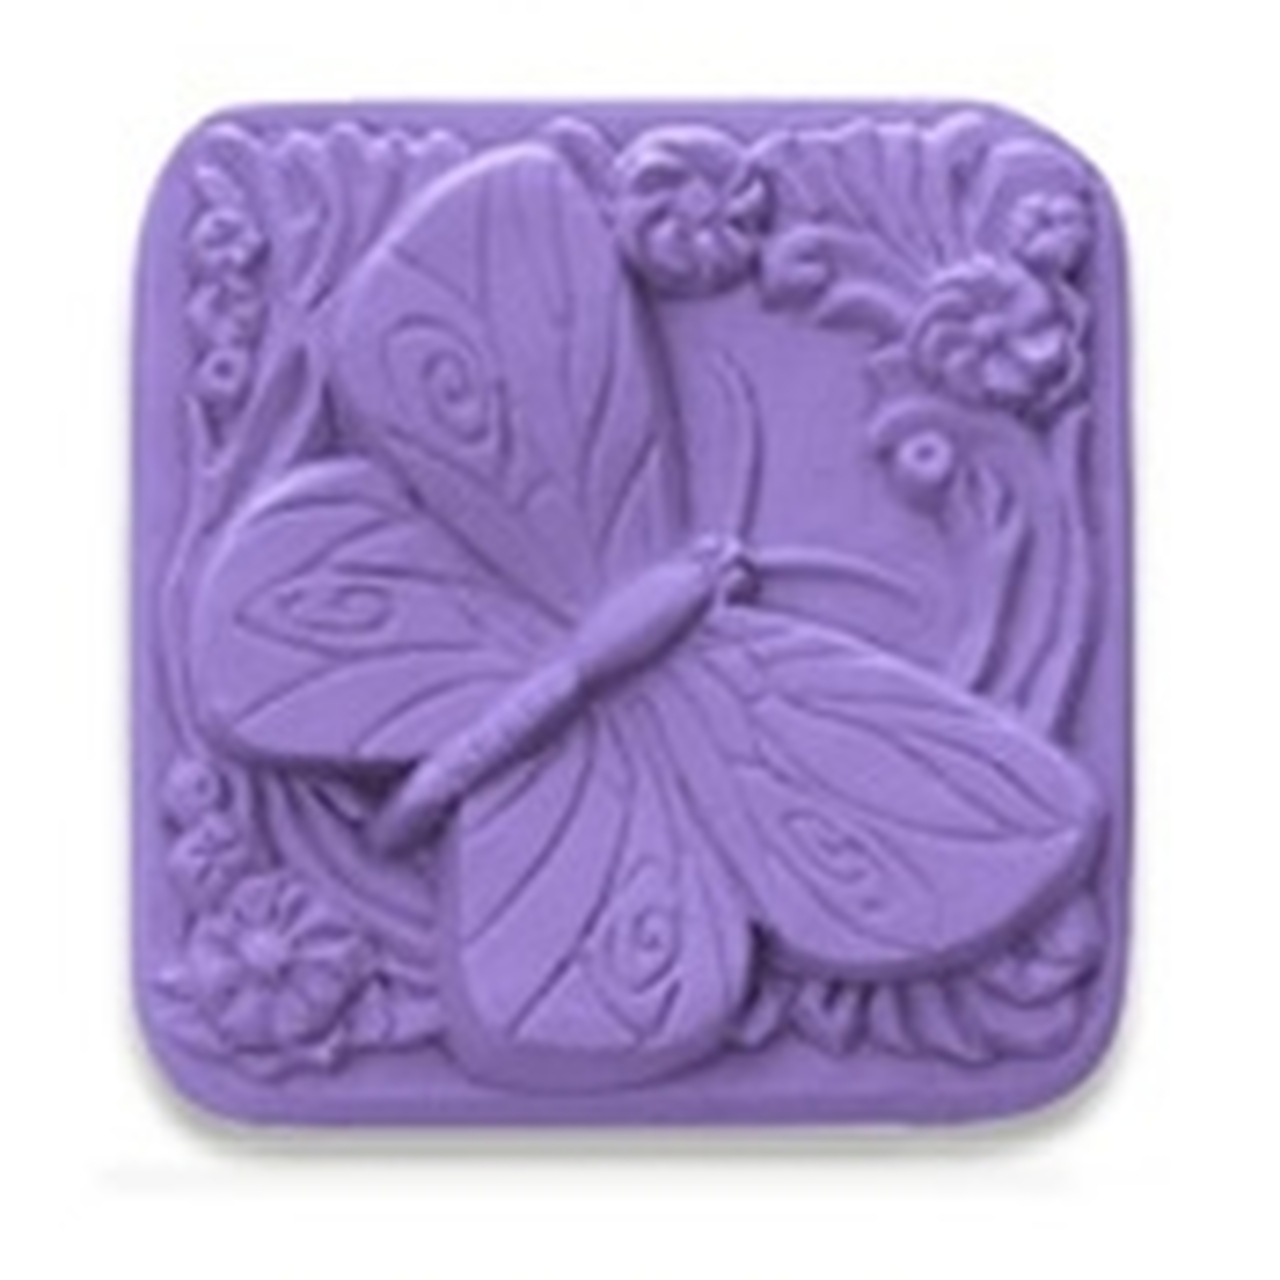 Buy Soap Molds Wholesale Silicone Plastic Milky Way